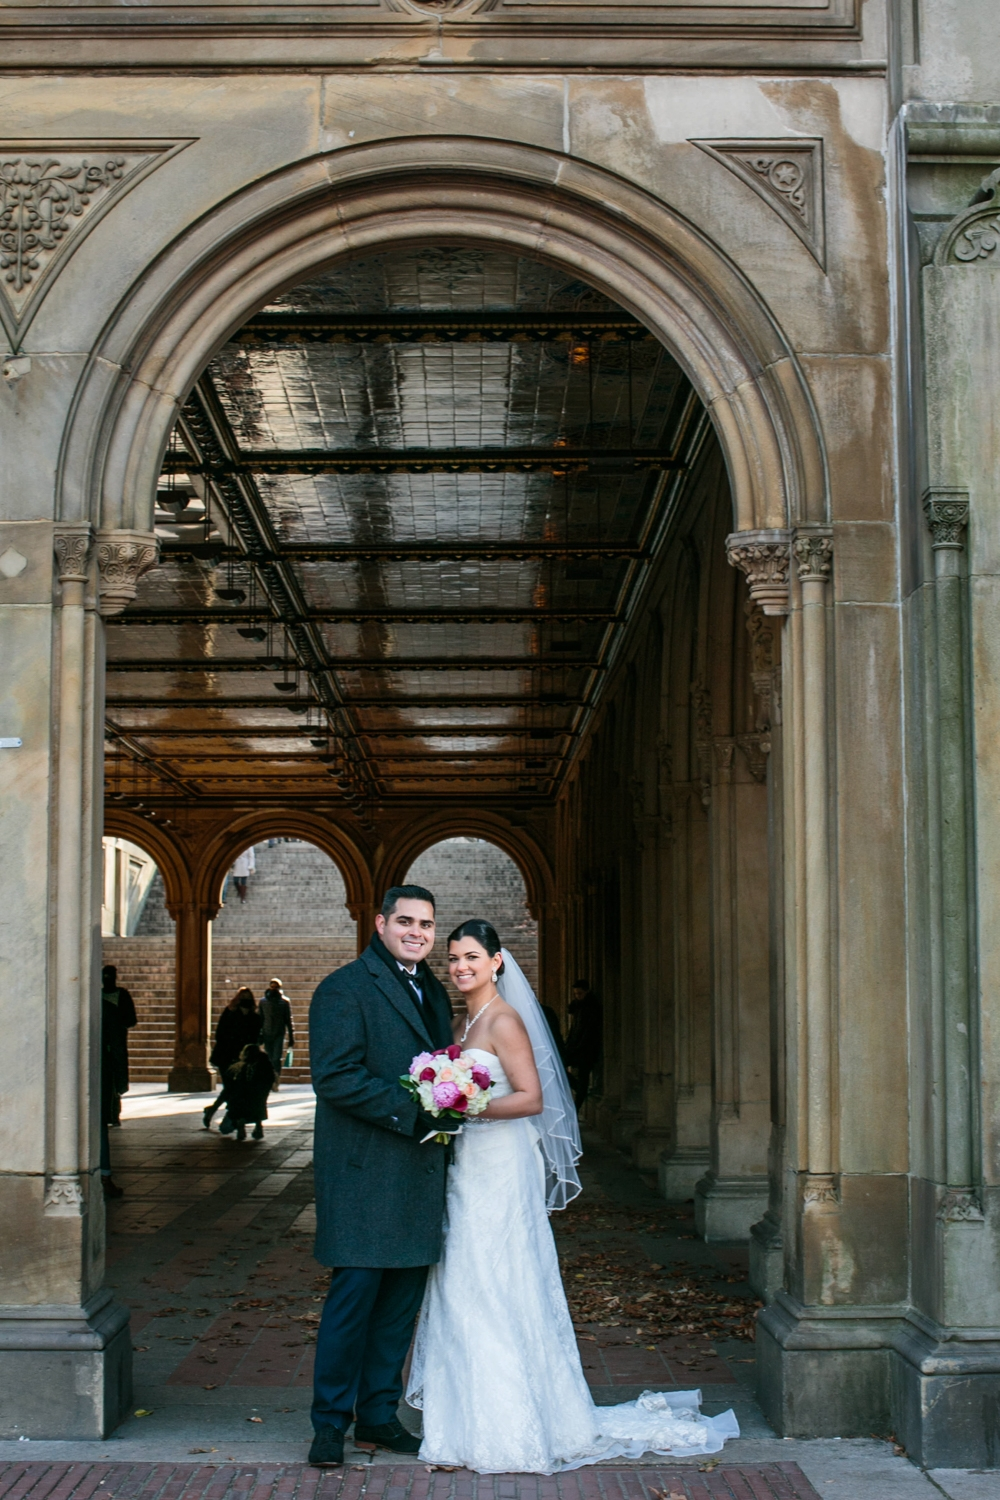 Bride and groom smiling under beautiful arch